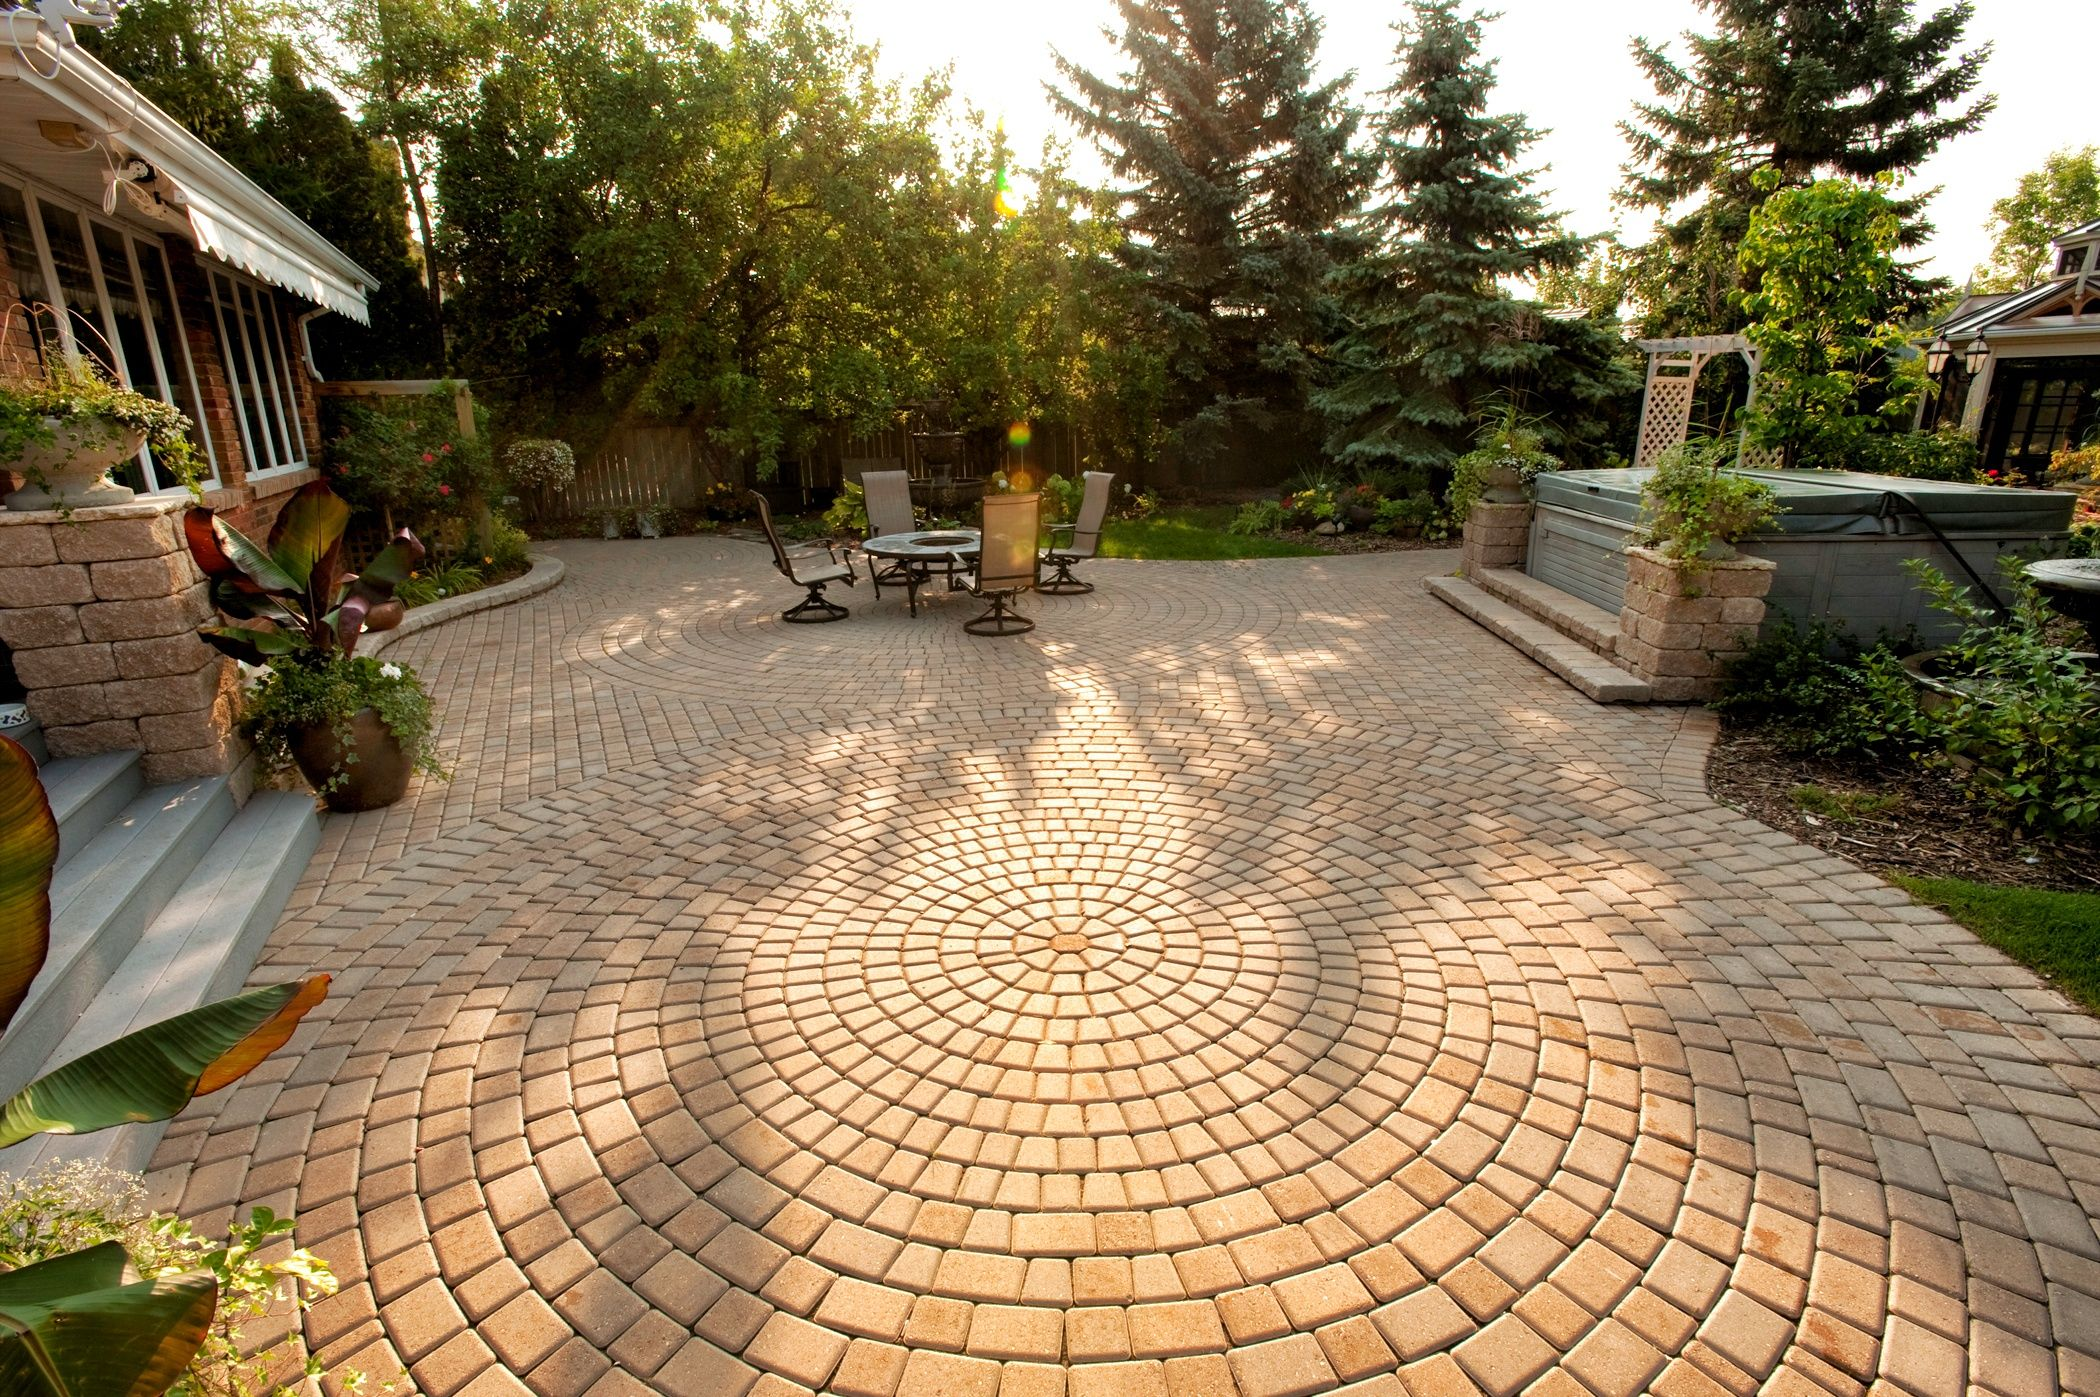 New patio and landscaping close up of the pavers flickr - Www Interlock Concrete Com Victorian Circle Patio Paver